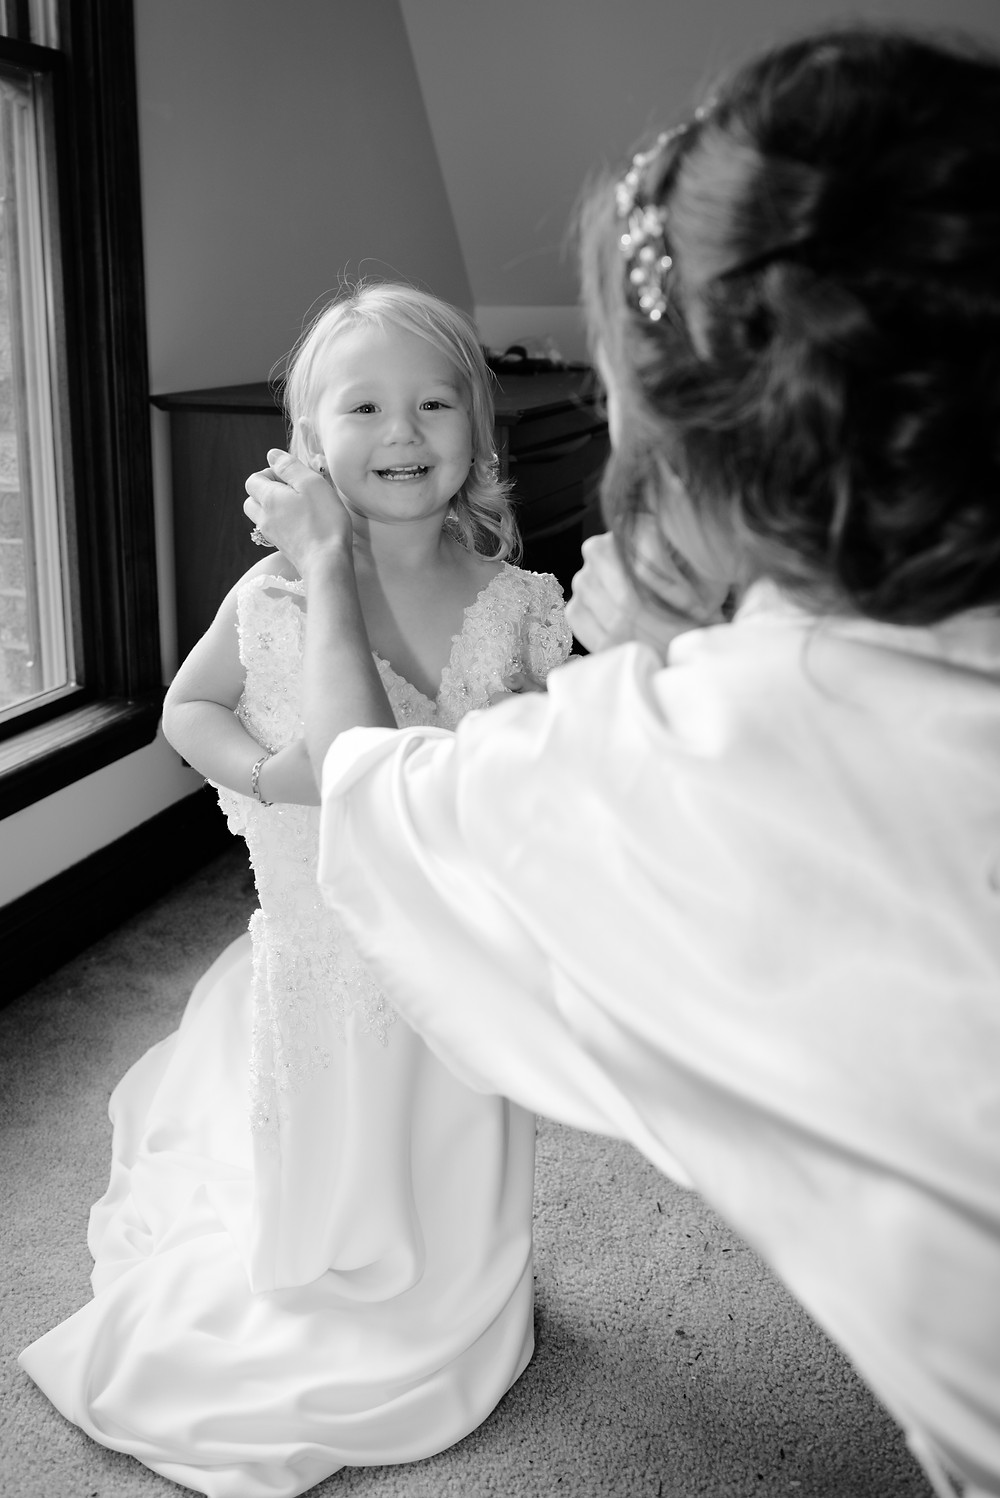 The daughter of the bride trying on her mom's wedding dress.